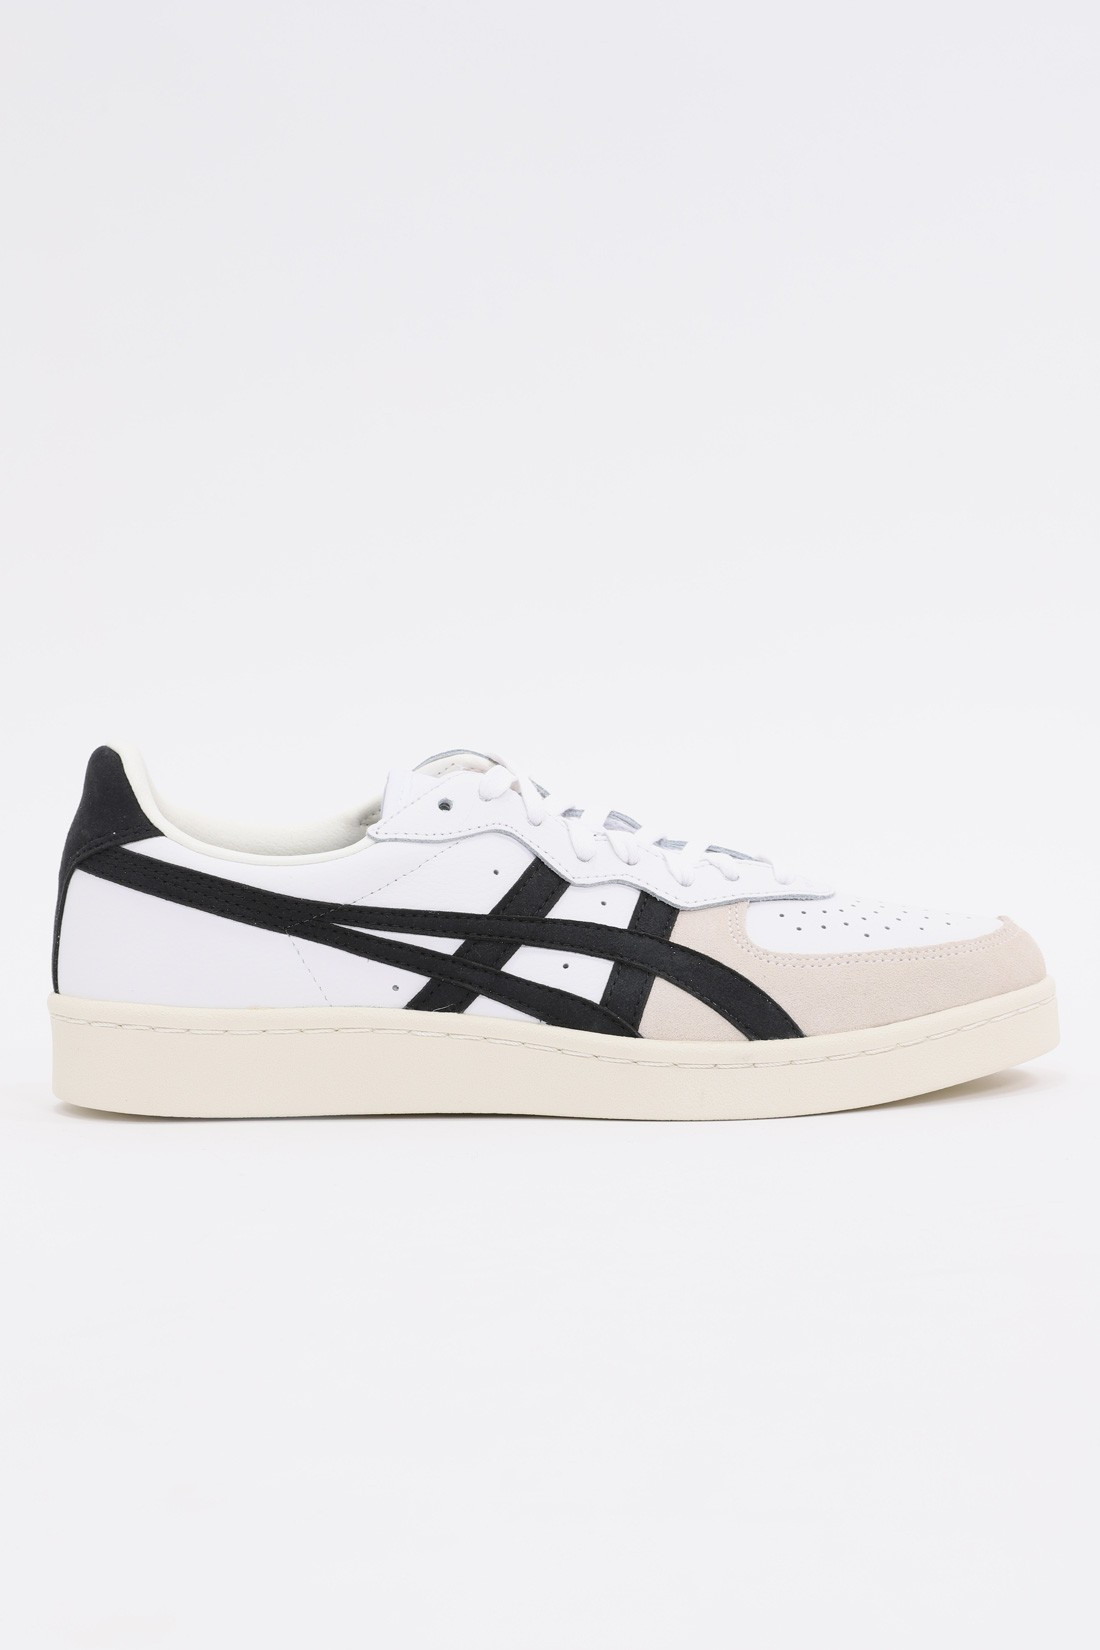 ASICS / Gsm White black